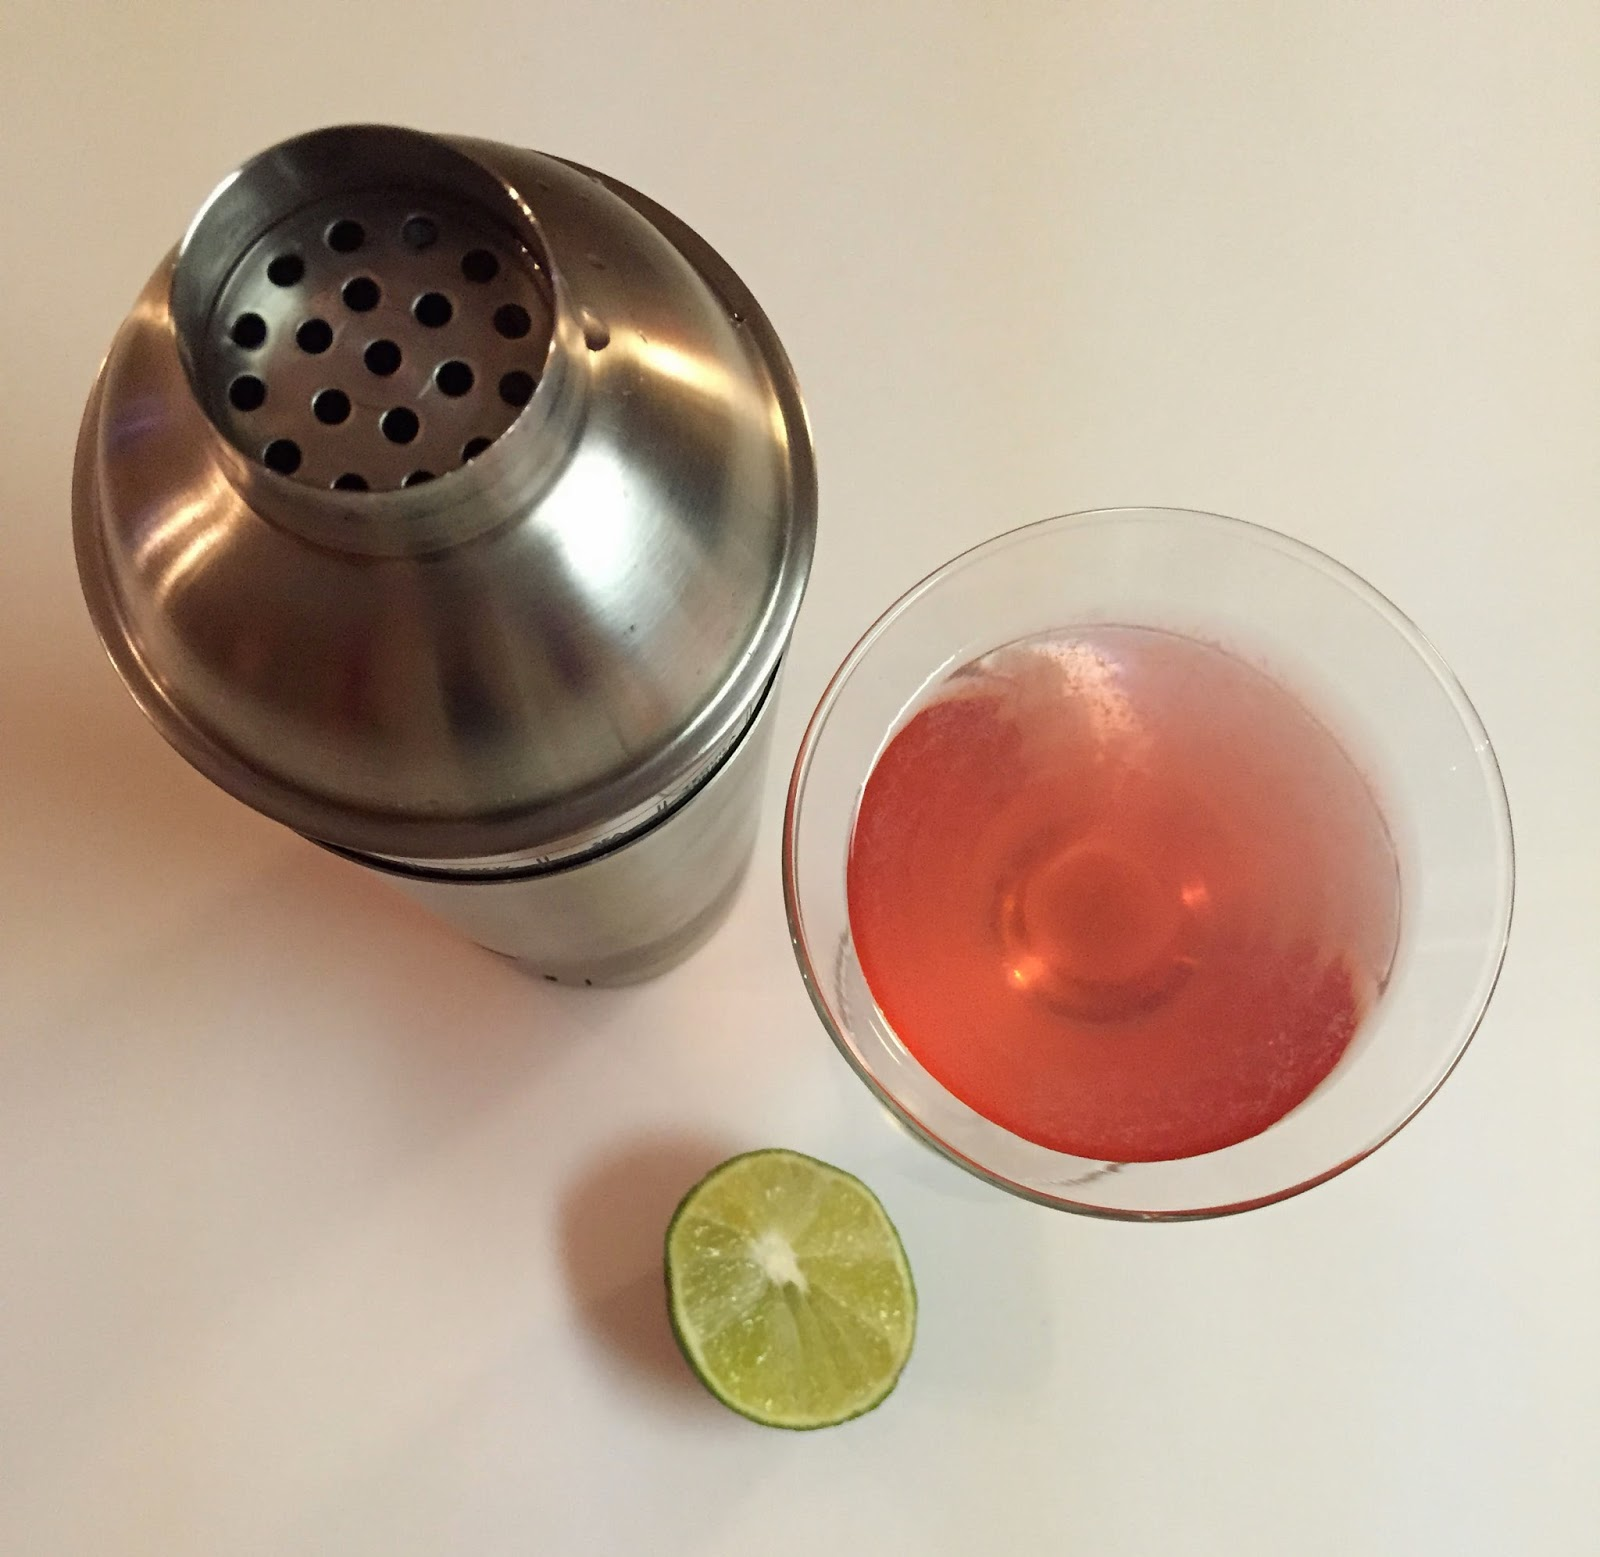 cosmopolitans made with Iowa-made vodka